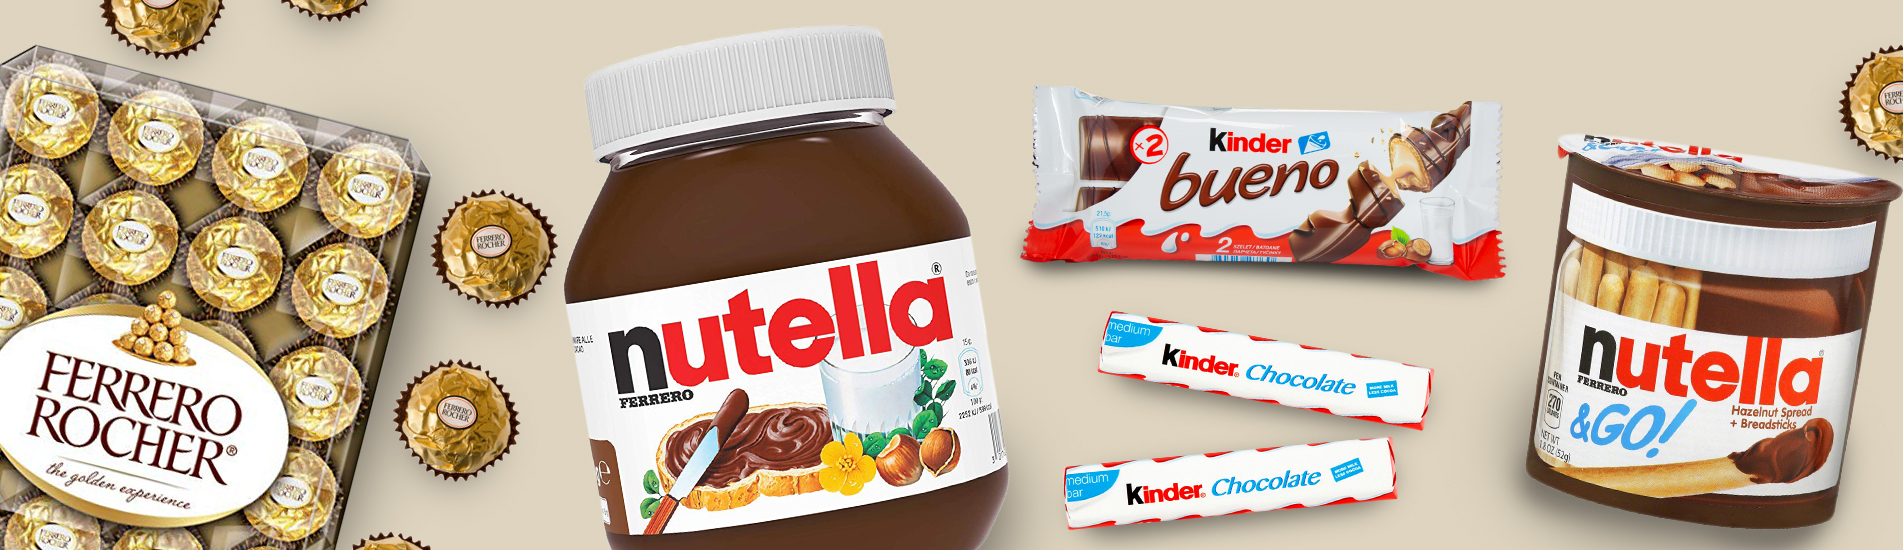 Ferrero and Nutella – premium Italian chocolate with long tradition